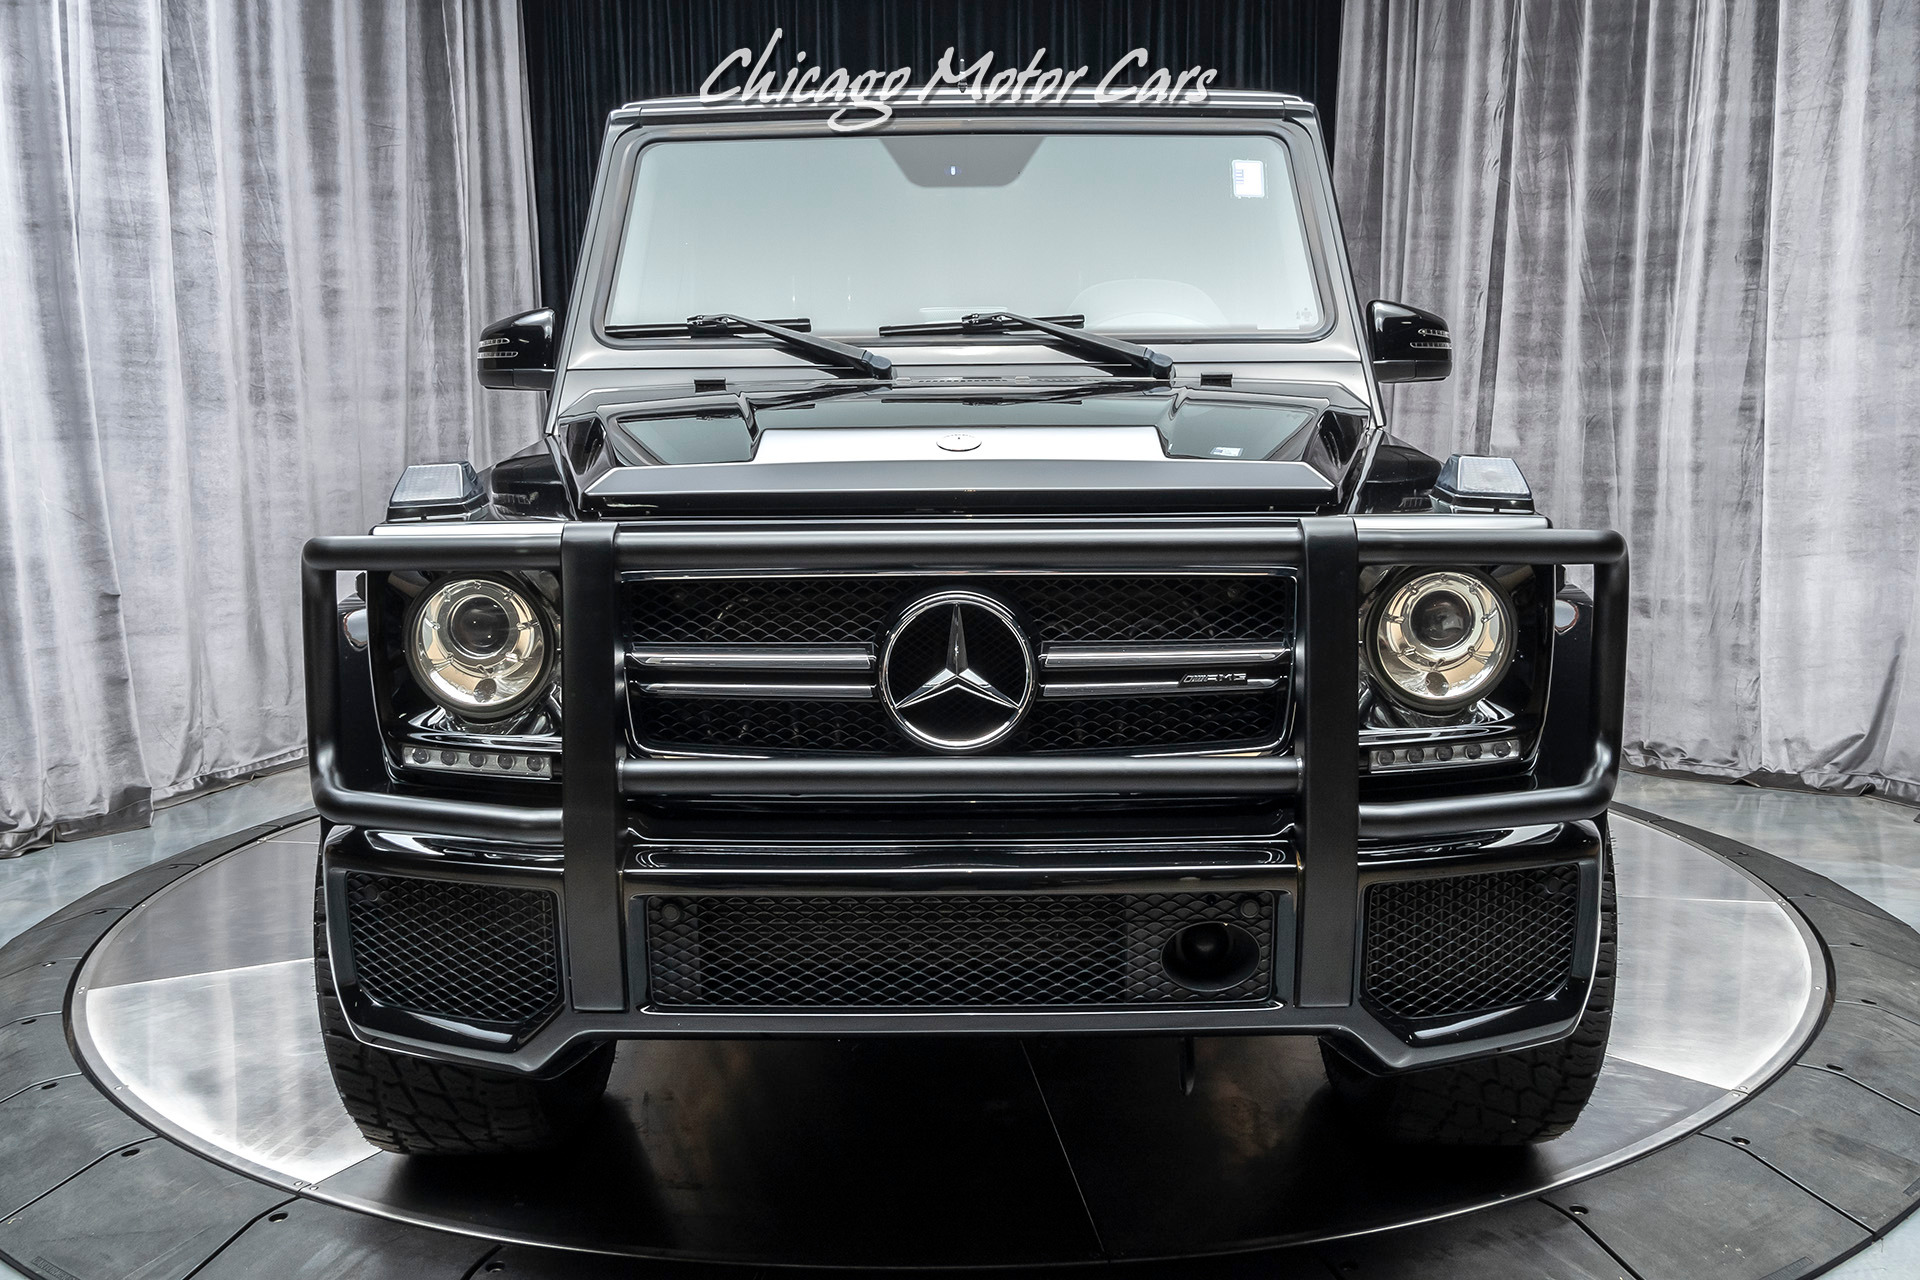 Used-2015-Mercedes-Benz-G63-AMG-SUV-MSRP-143K-20-INCH-ADV1-WHEELS